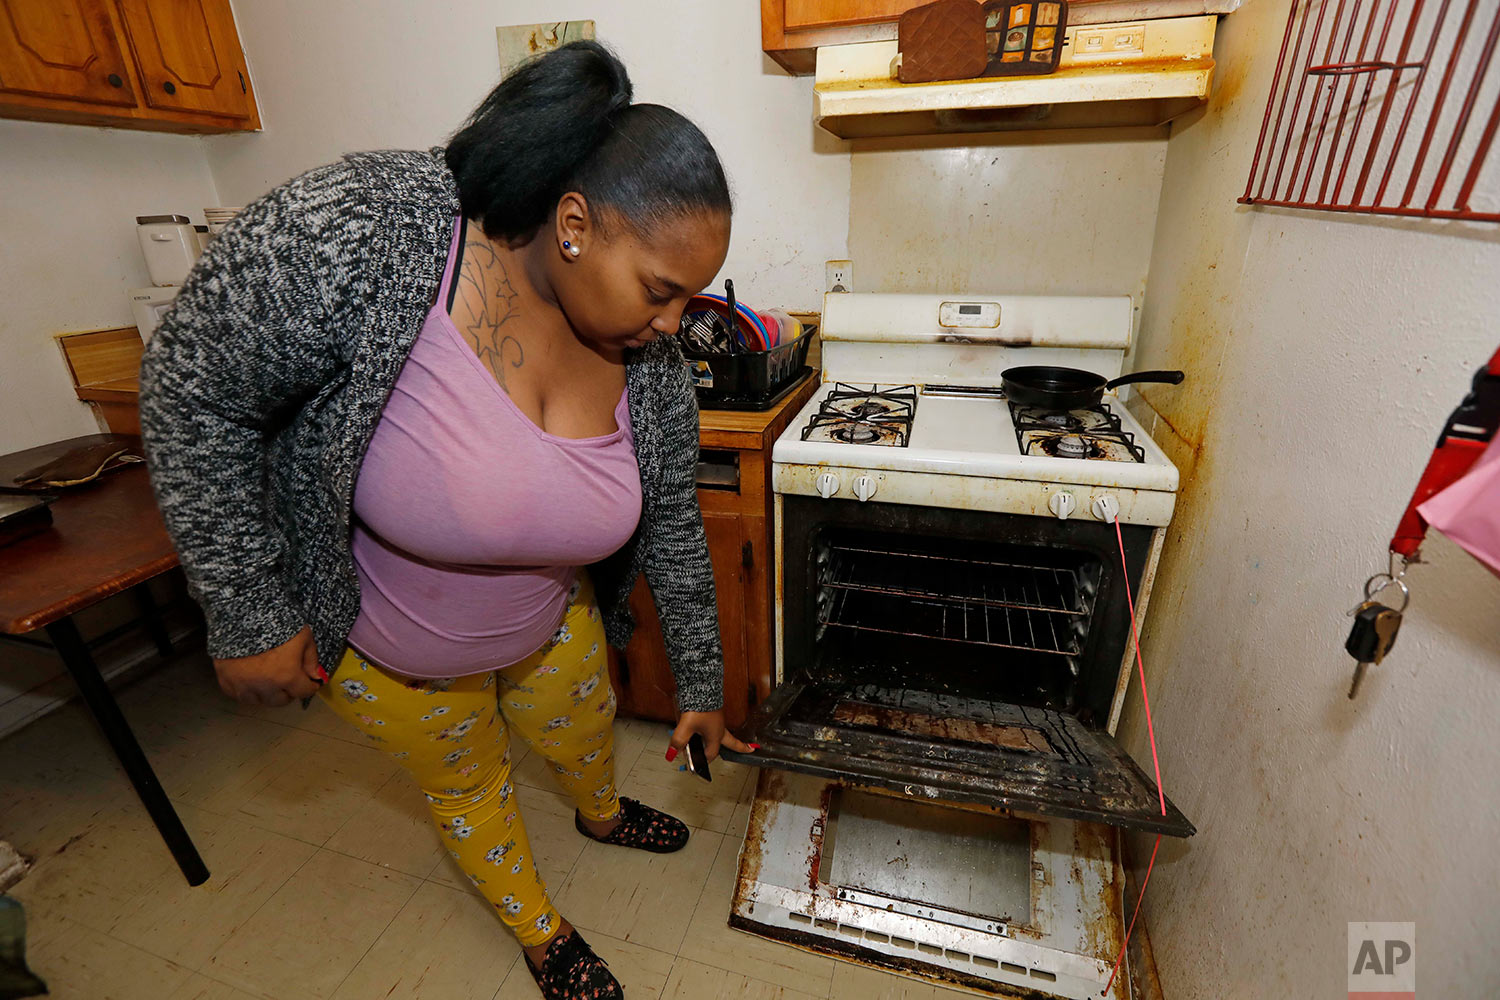 In this Feb. 20, 2019 photo, Destiny Johnson shows the broken door to her oven that she uses string to hold together, in her apartment in Cedarhurst Homes, a federally subsidized, low-income apartment complex in Natchez, Miss. The complex failed a health and safety inspection in each of the past three years. Upset with conditions, Johnson moved out in late March. (AP Photo/Rogelio V. Solis)